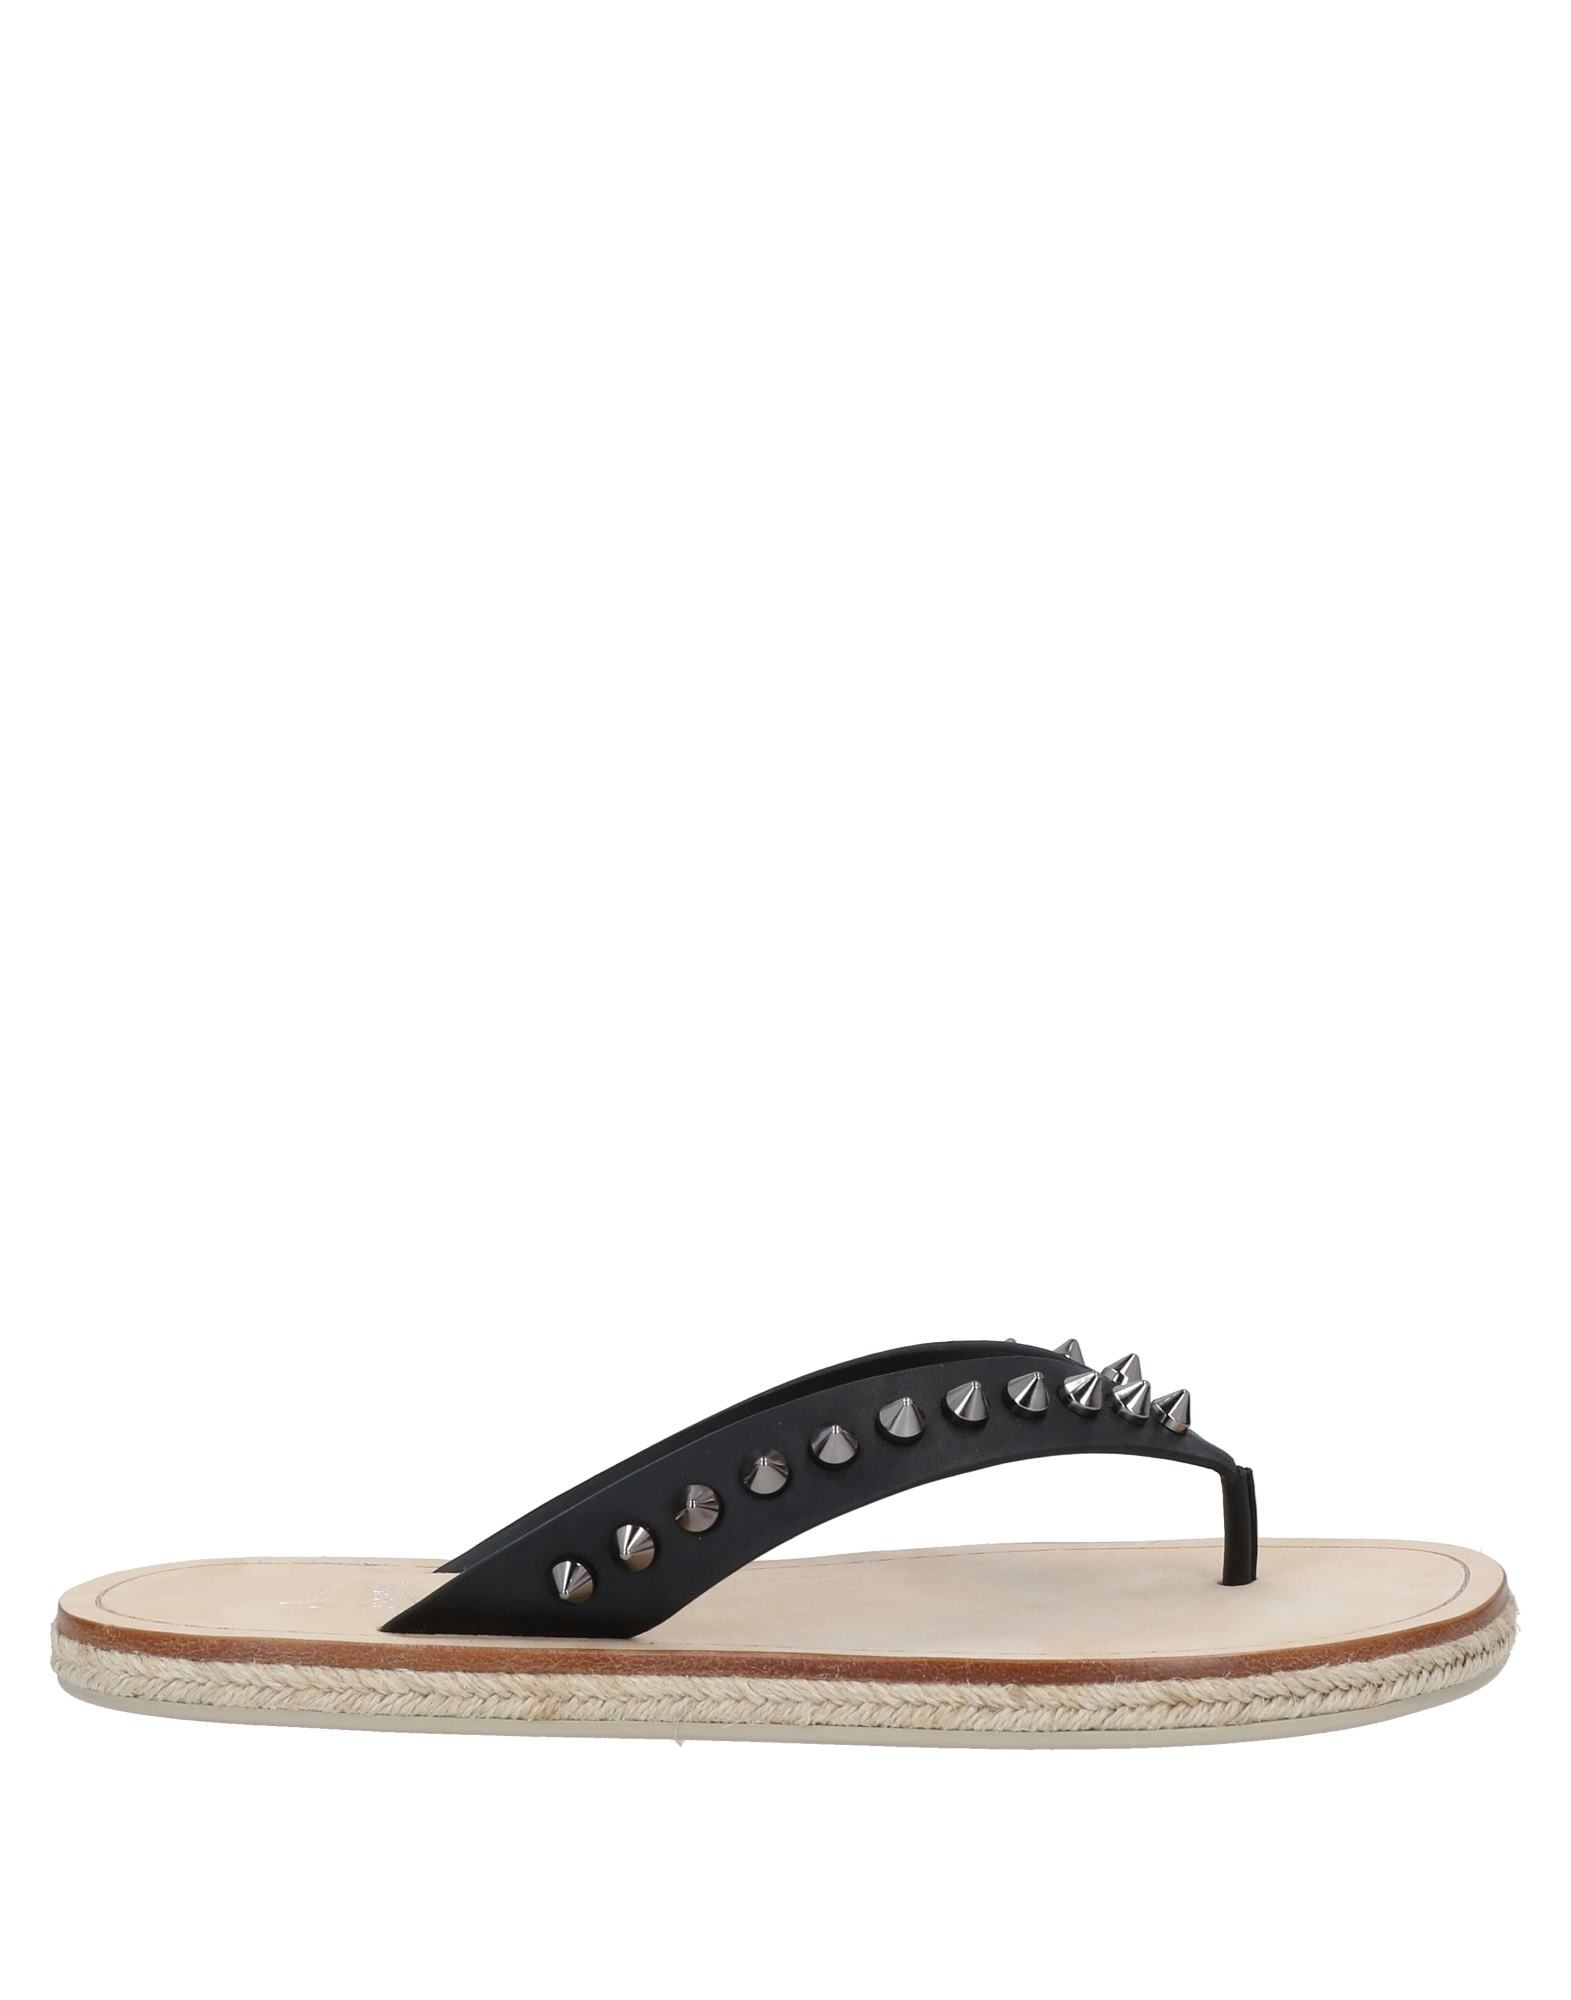 CHRISTIAN LOUBOUTIN Toe strap sandals. leather, studs, solid color, round toeline, flat, unlined, rubber cleated sole, contains non-textile parts of animal origin. 100% Calfskin